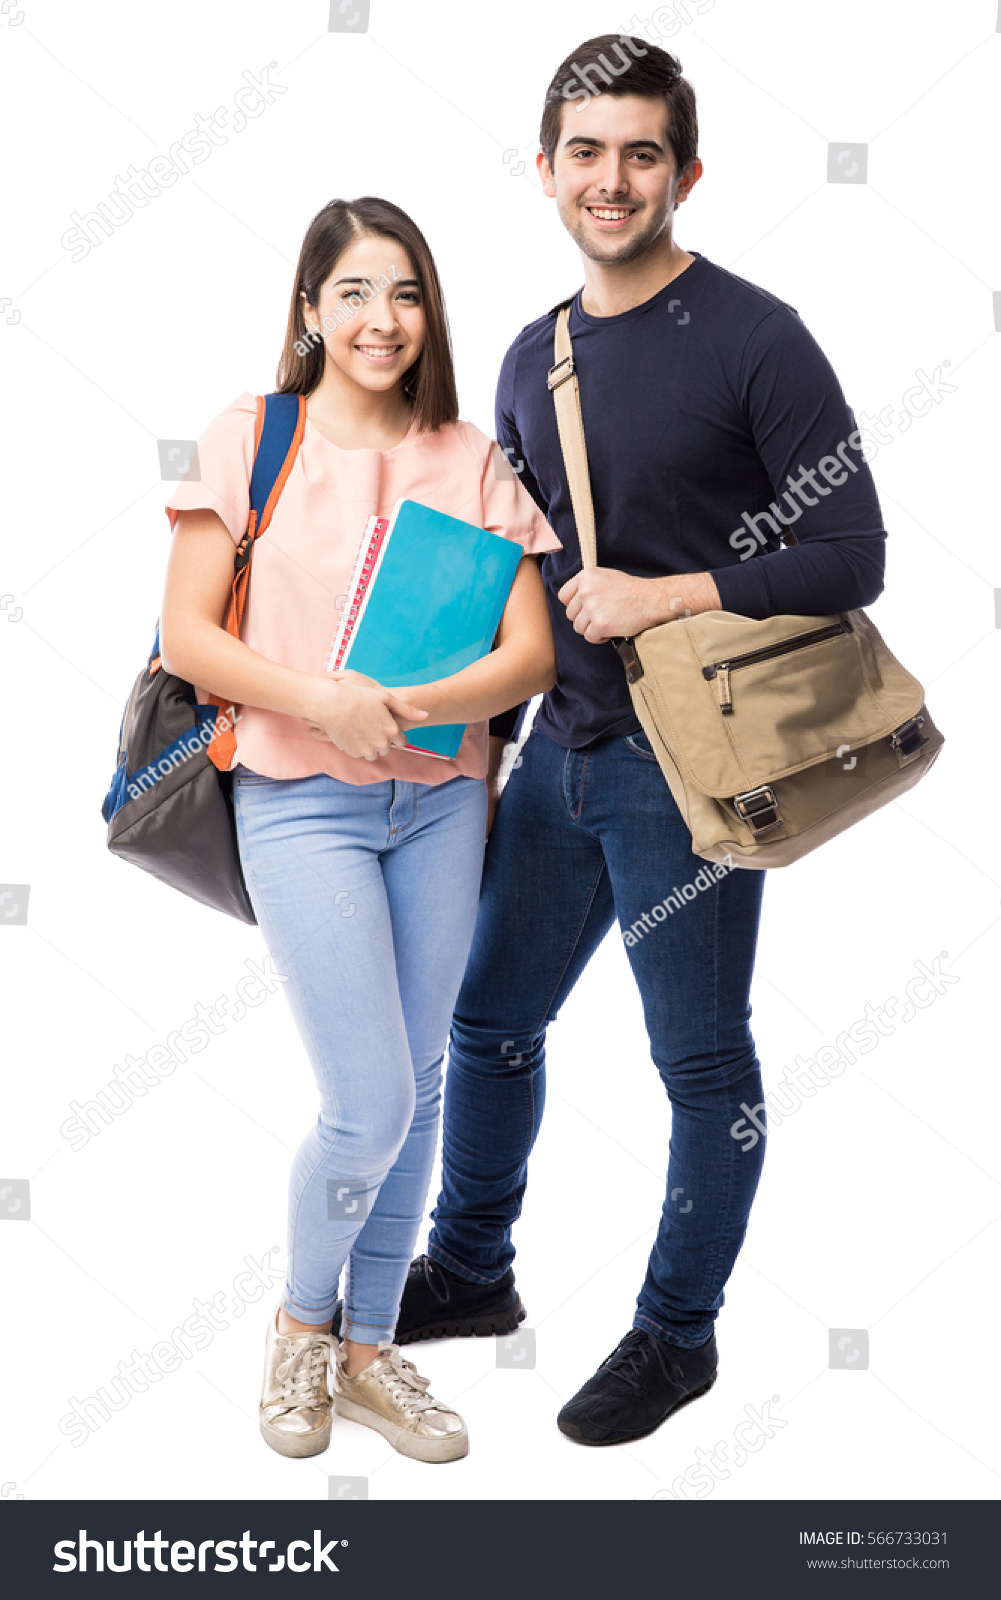 Attractive Young Couple Of College Students With Books And School Bags In A White Background